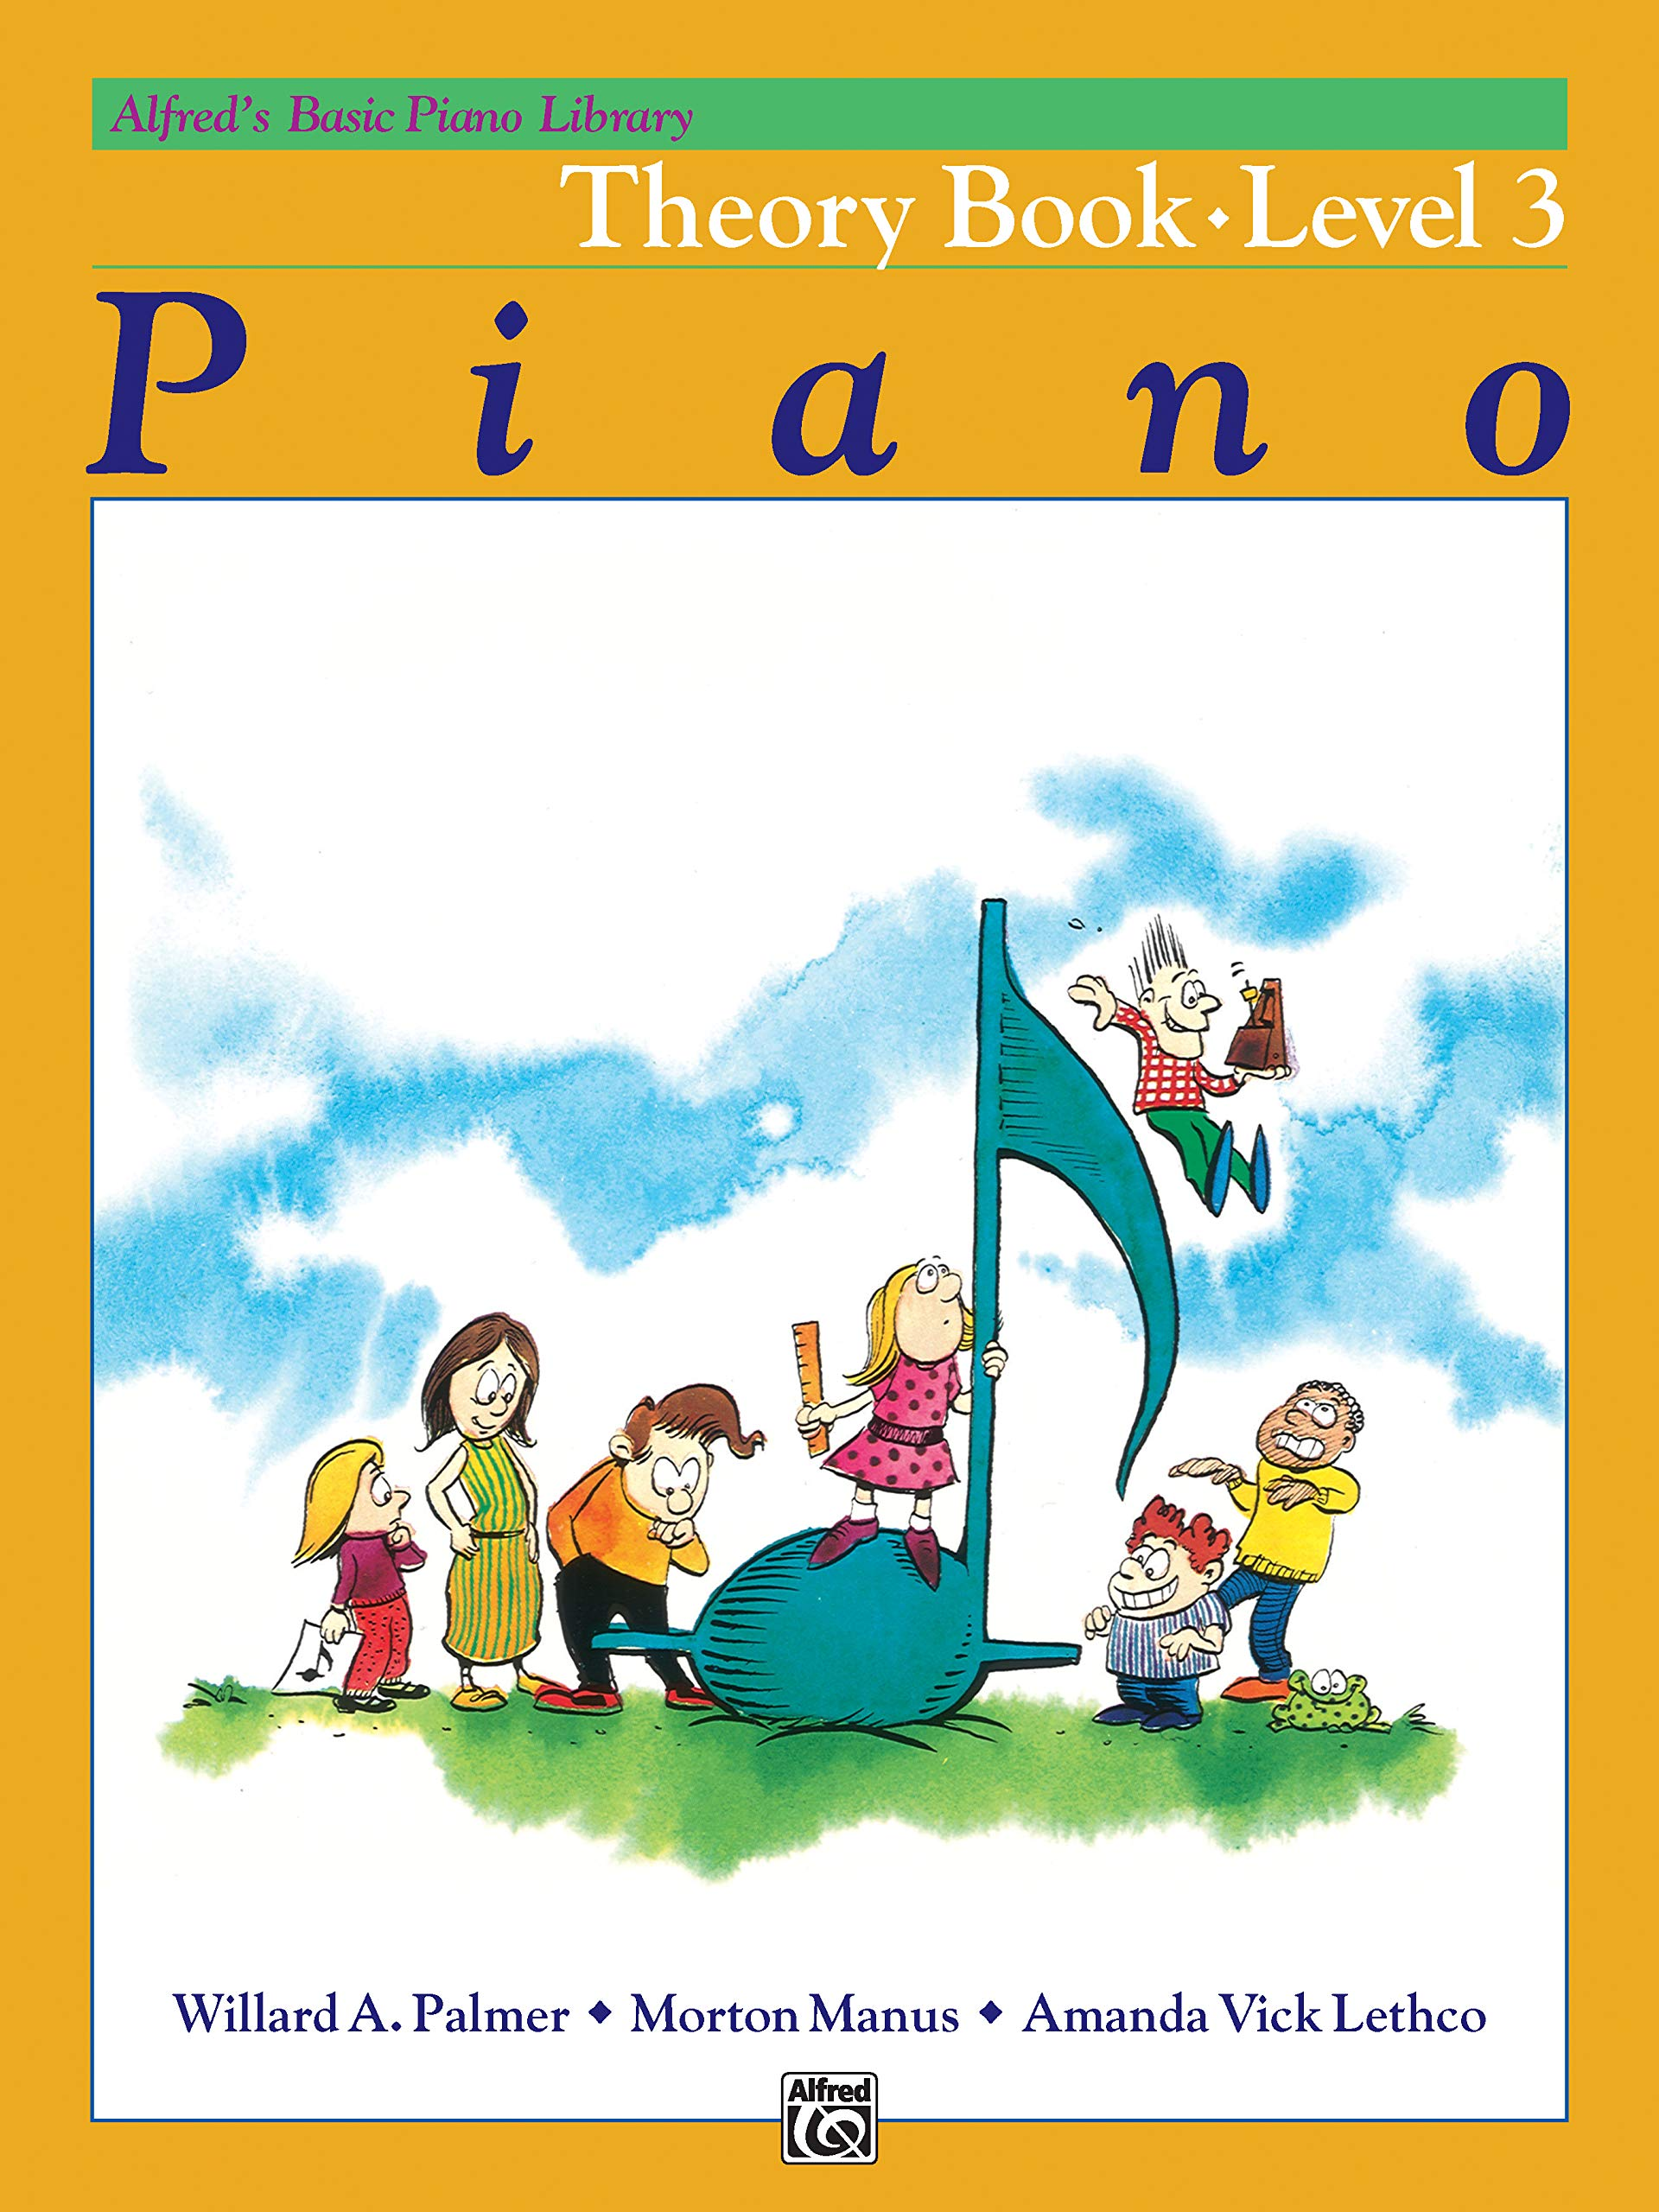 ALFRED/'S BASIC PIANO LIBRARY COURSE THEORY LEVEL 3 MUSIC BOOK BRAND NEW ON SALE!